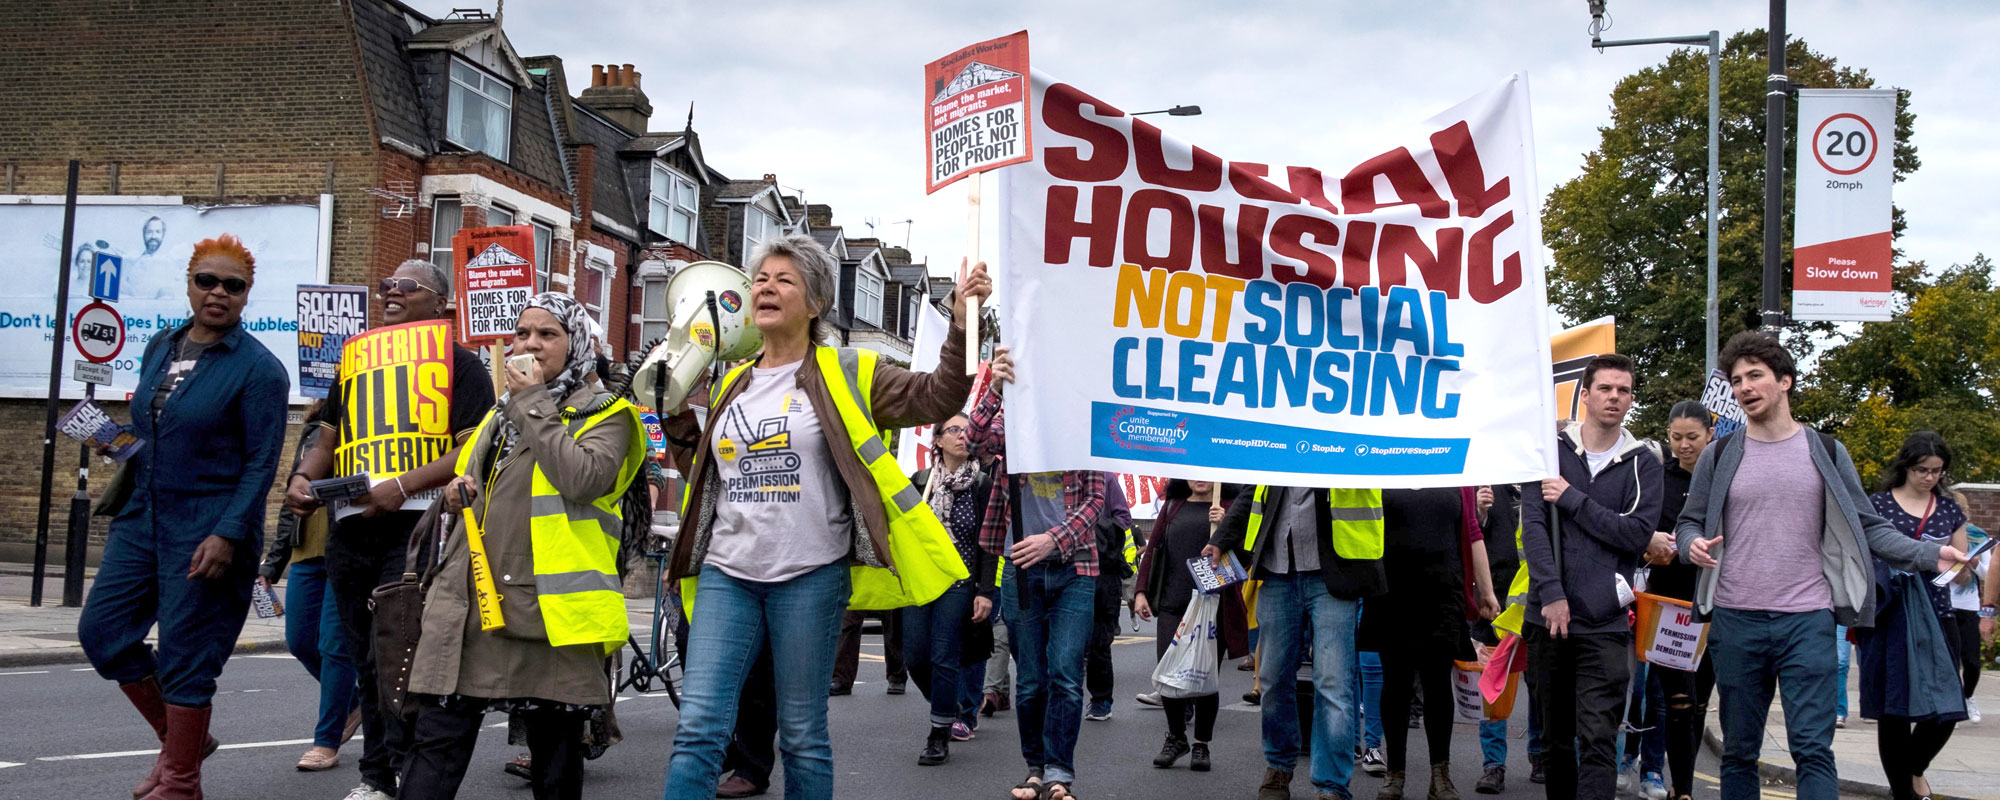 Angry residents marching against Haringey Council Photo: Paul Swinney/Alamy